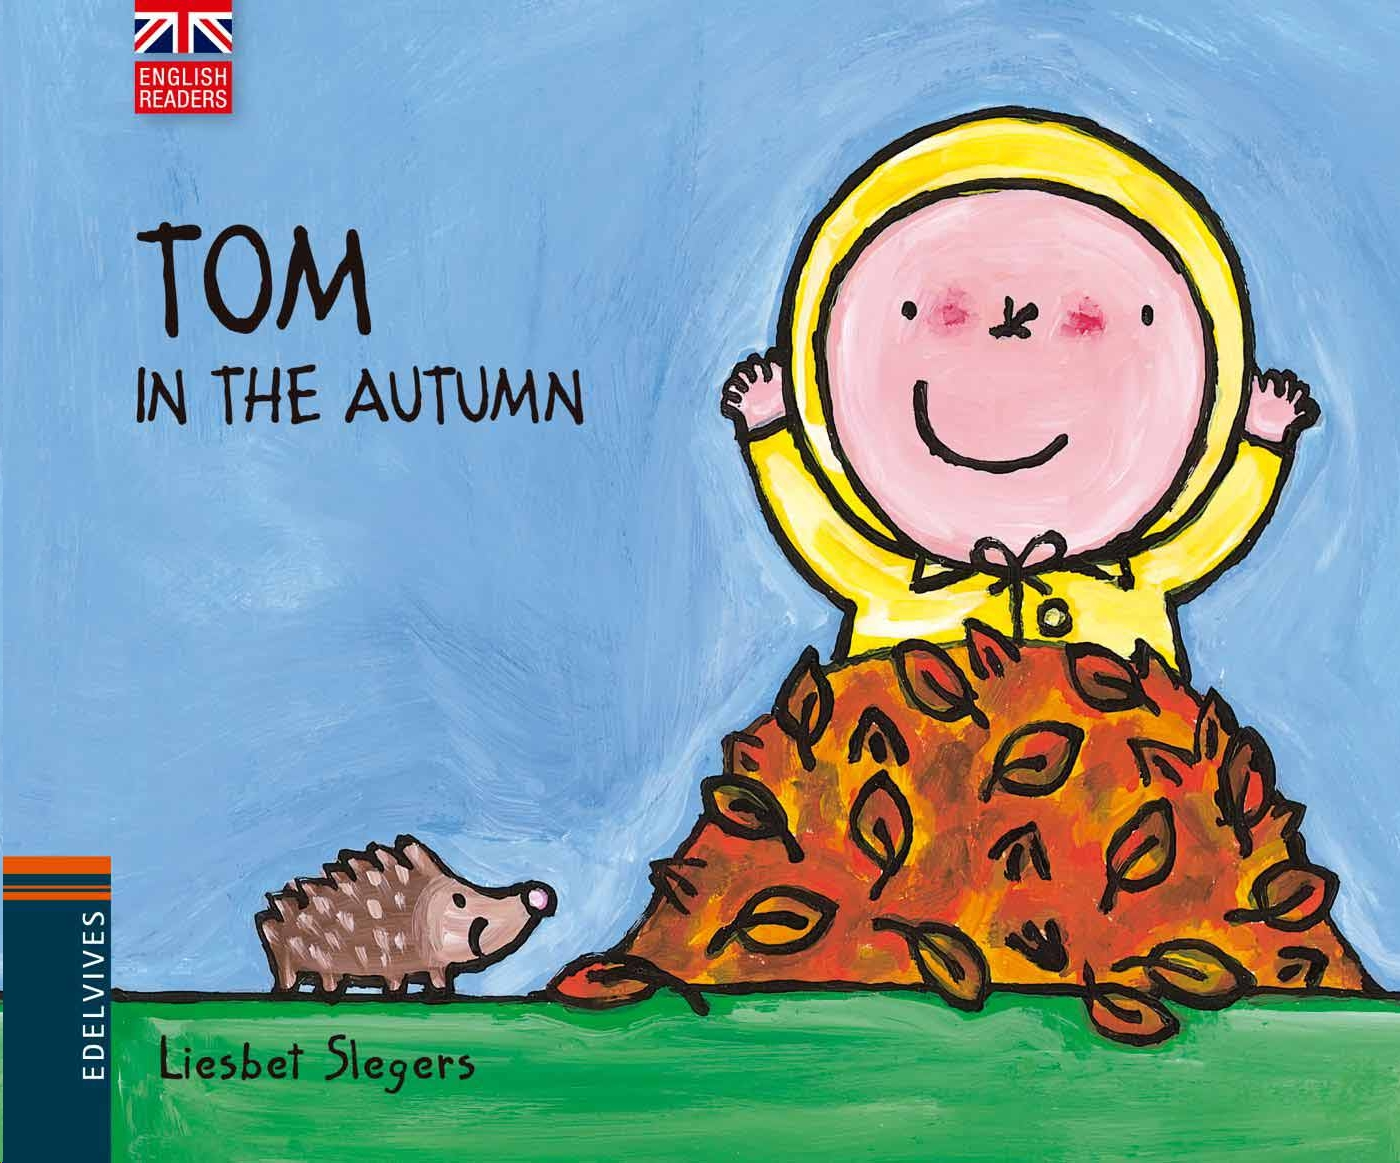 Tom in the Autumn